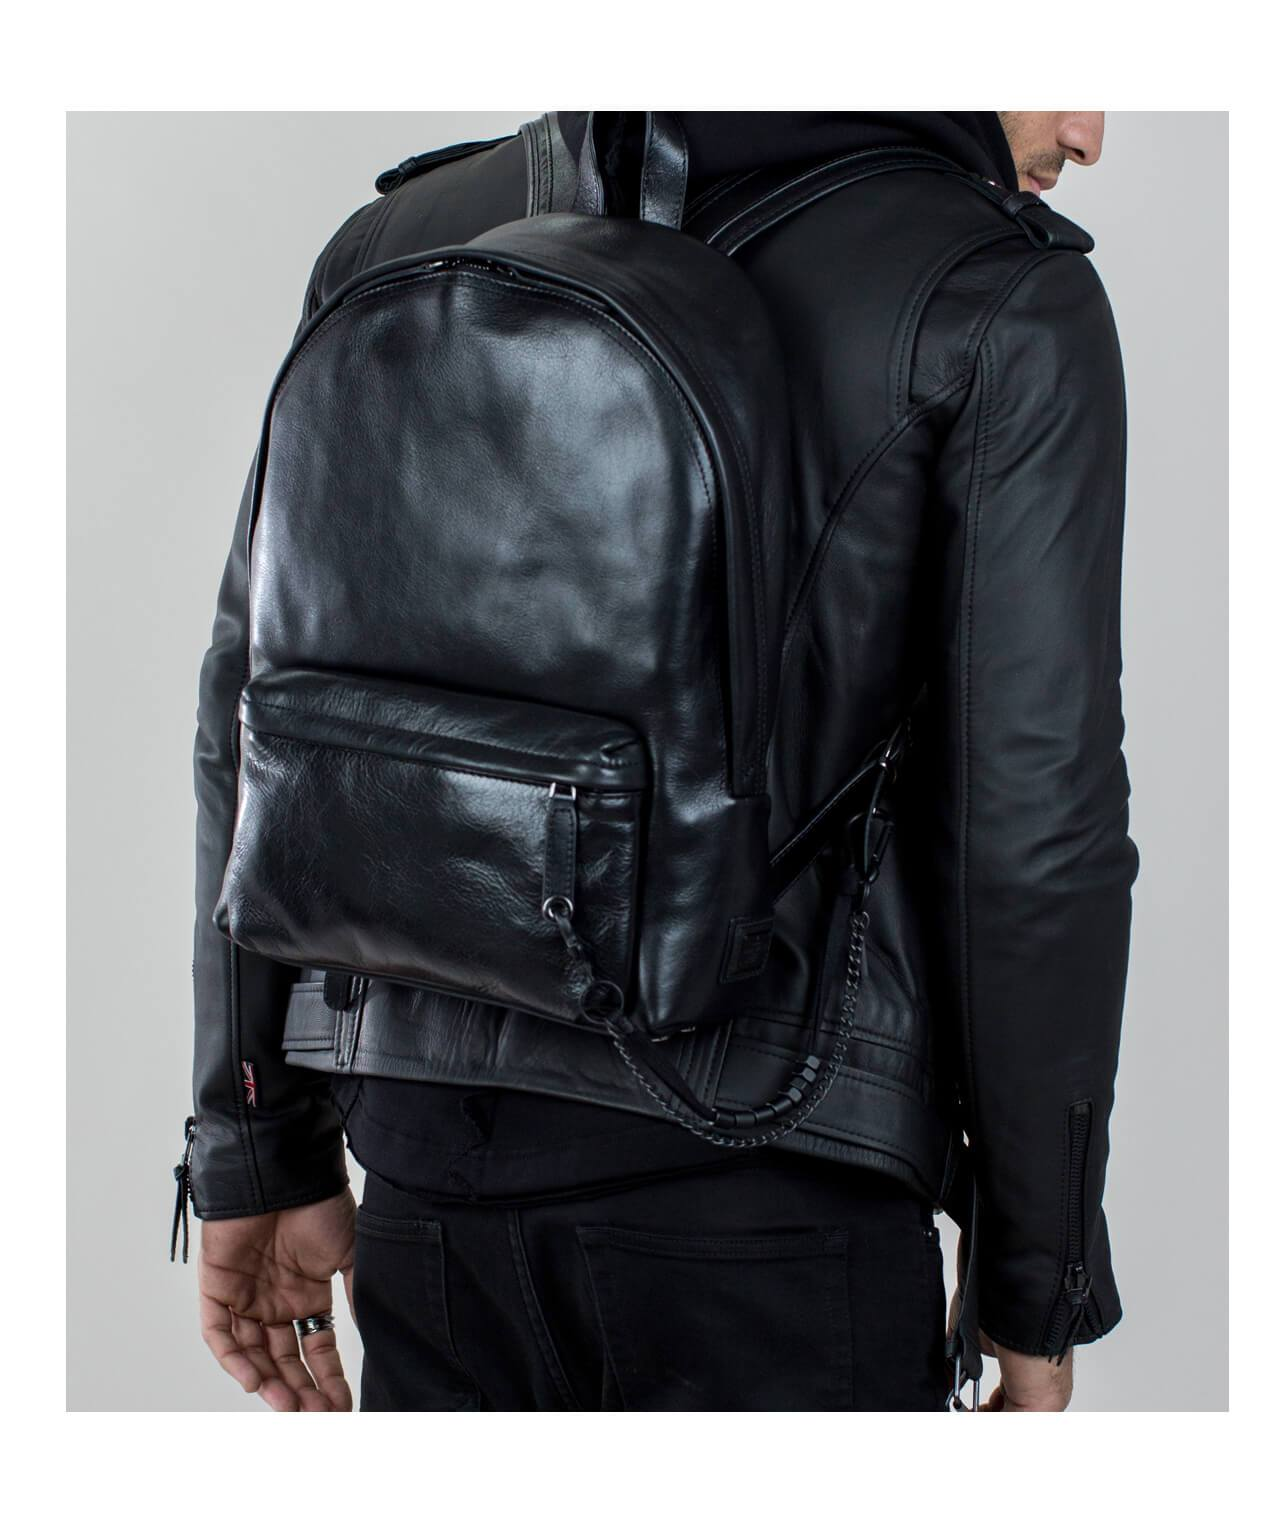 Falcon XL Backpack